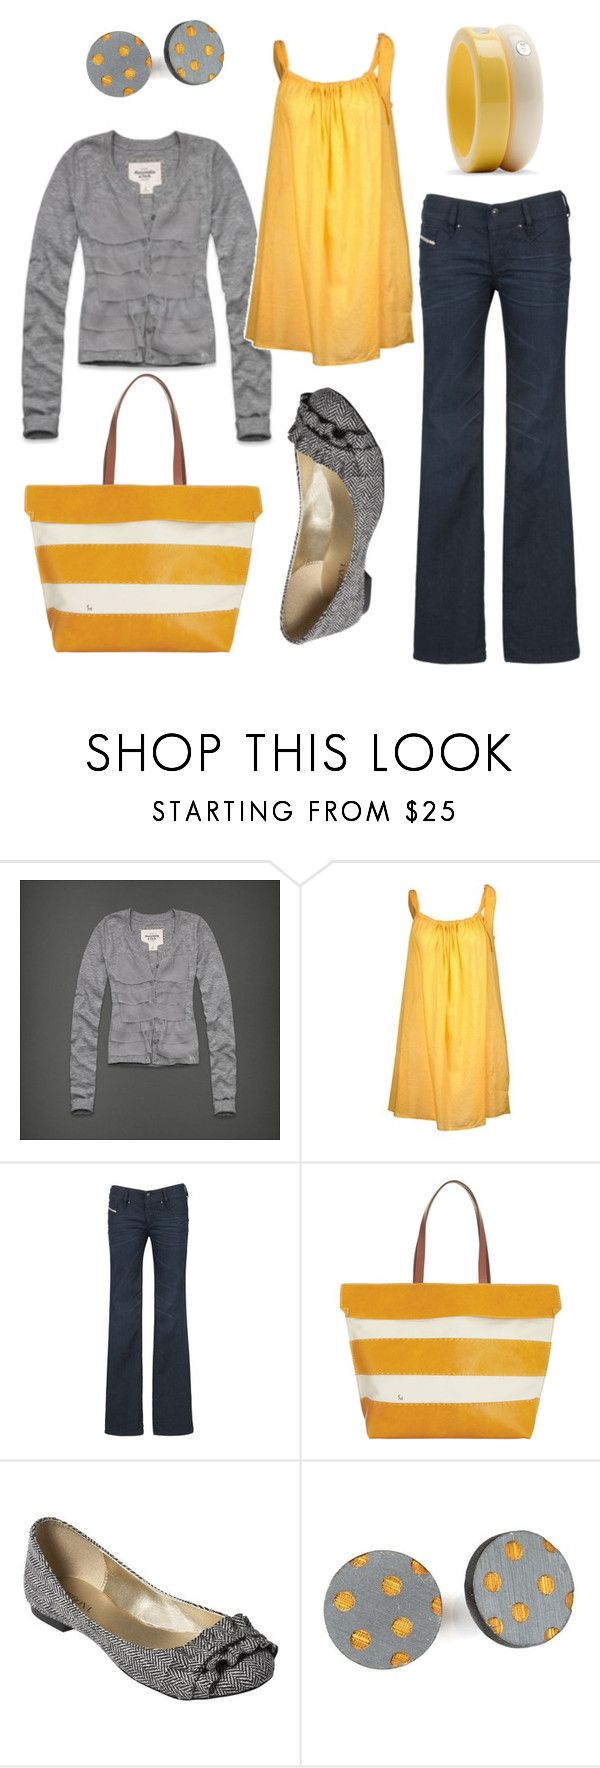 """sunshine on my shoulders"" by htotheb ❤ liked on Polyvore featuring Abercrombie & Fitch, Rasurel, Diesel, Henry Cuir, Uncommonly Beautiful, MANGO, polka dots, white, grey and yellow"